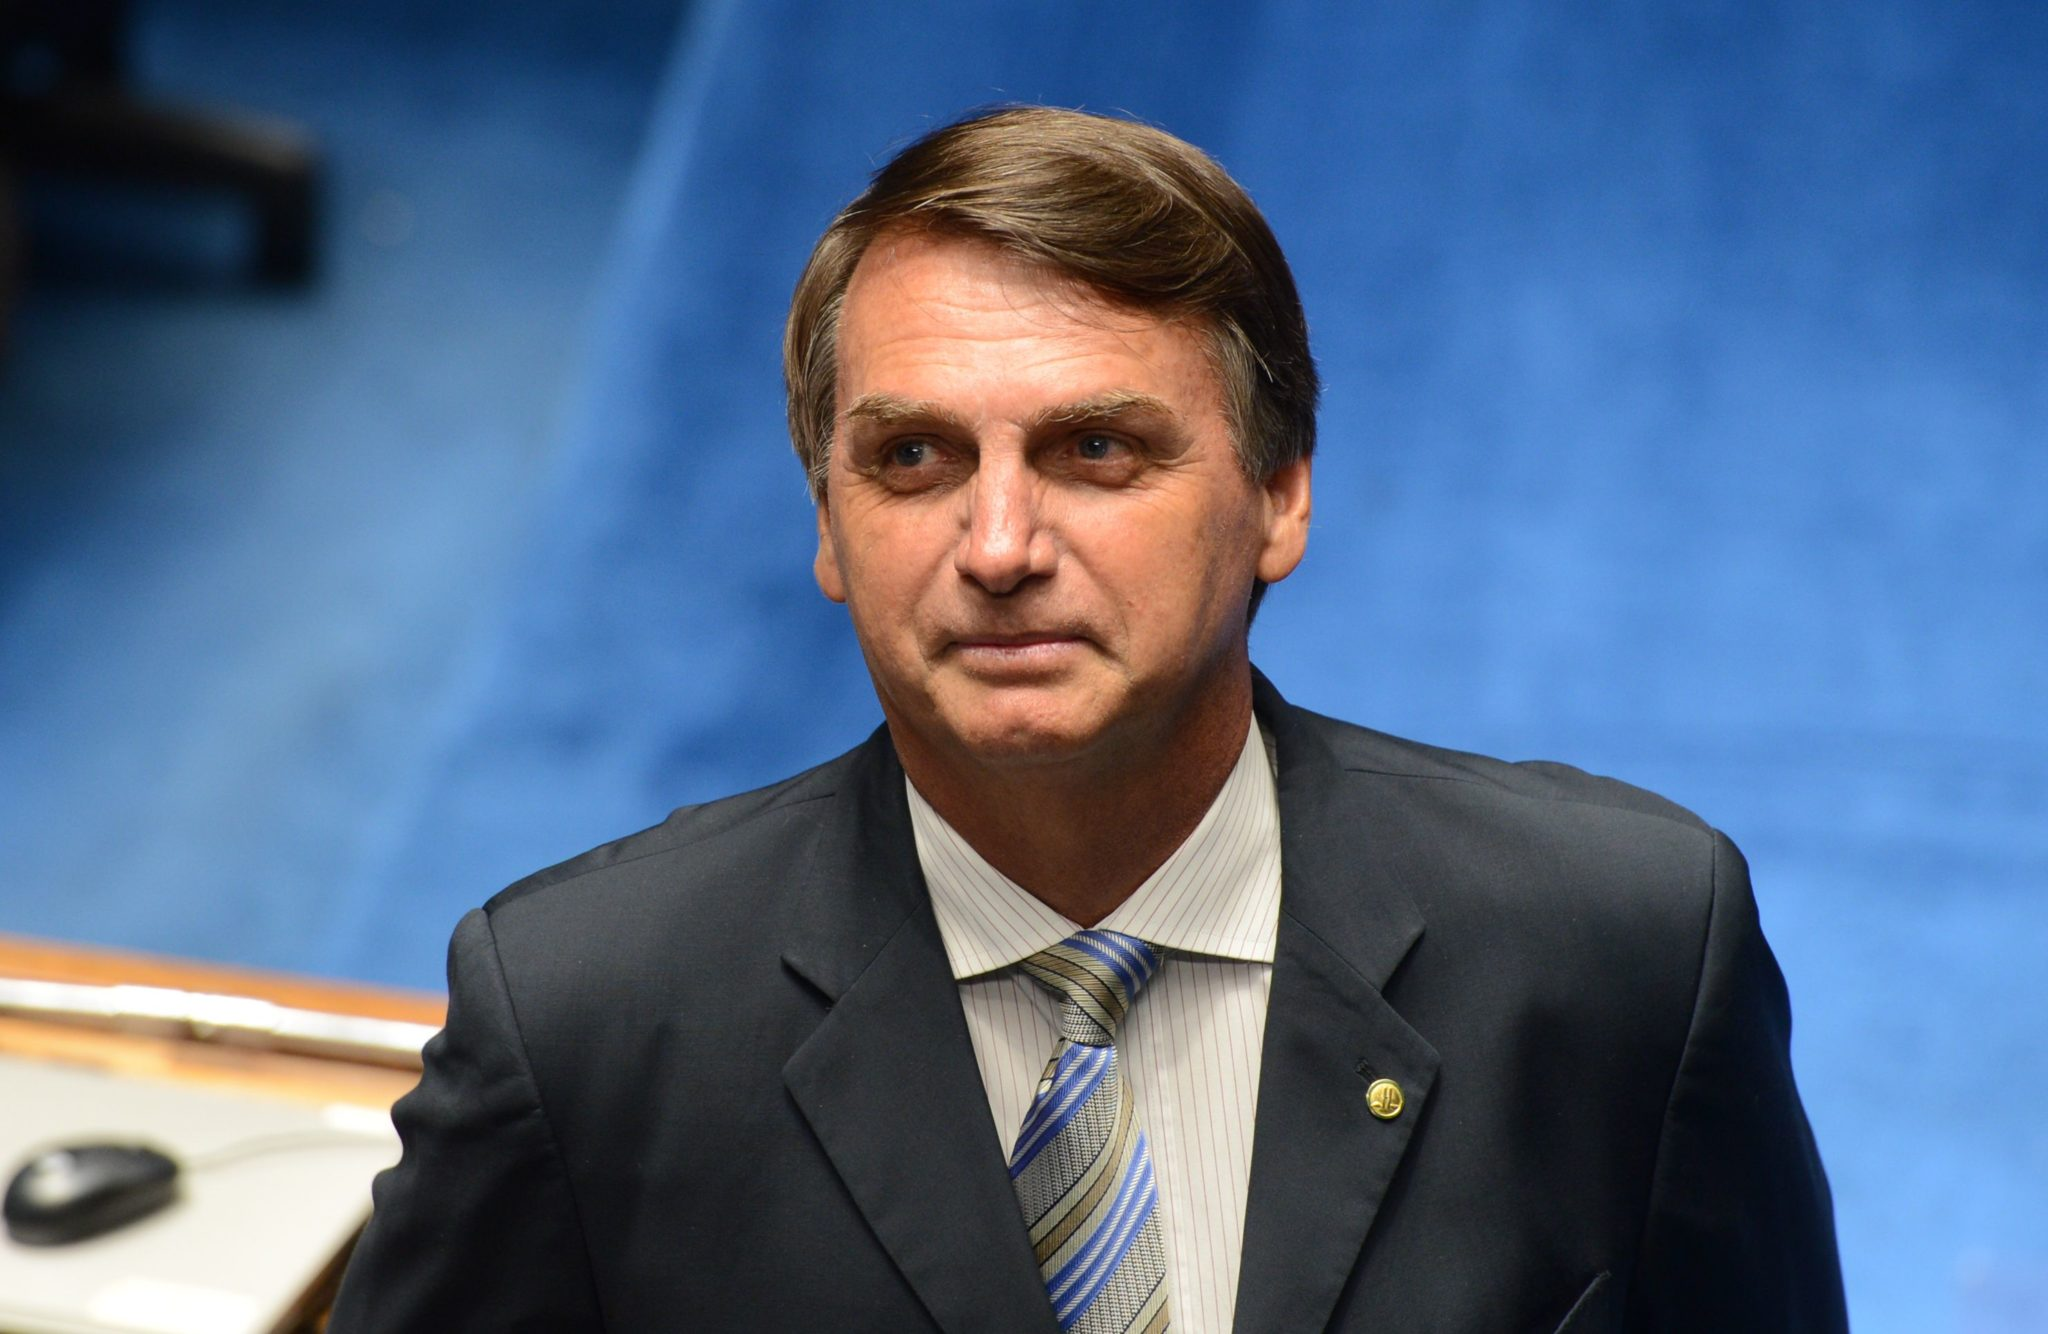 Bolsonaro's weaponized social media